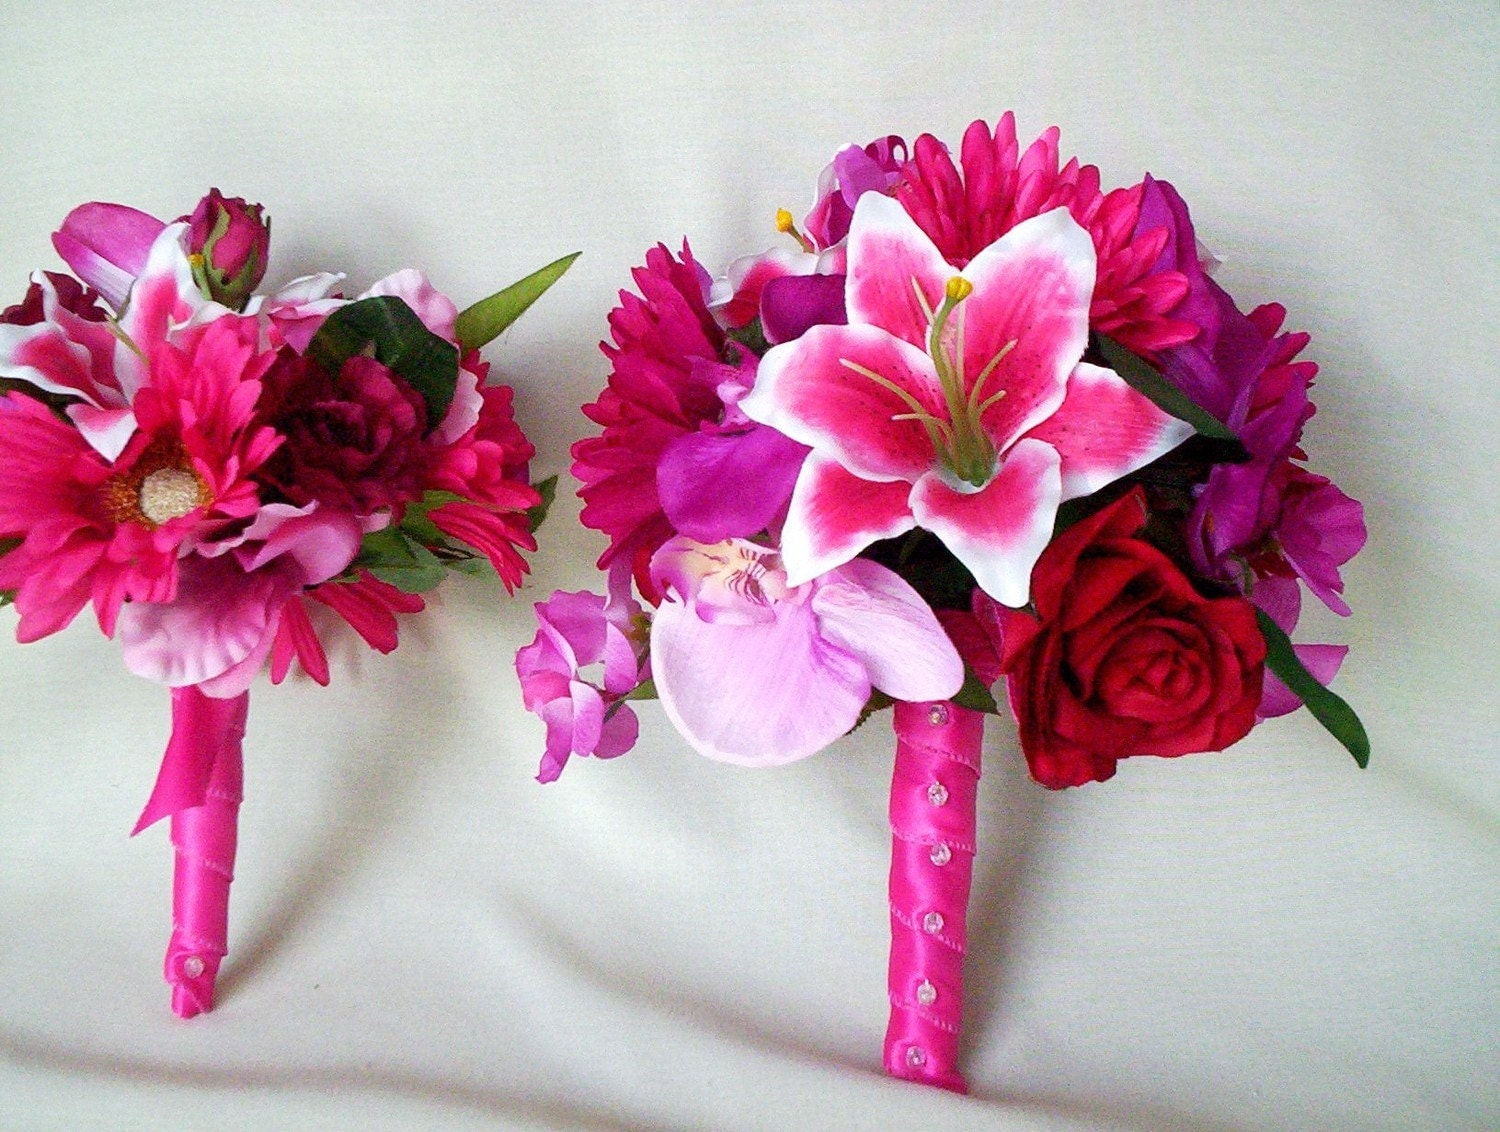 Hot Pink Brides Maid Lilly Bouquet Silk Wedding Flowers